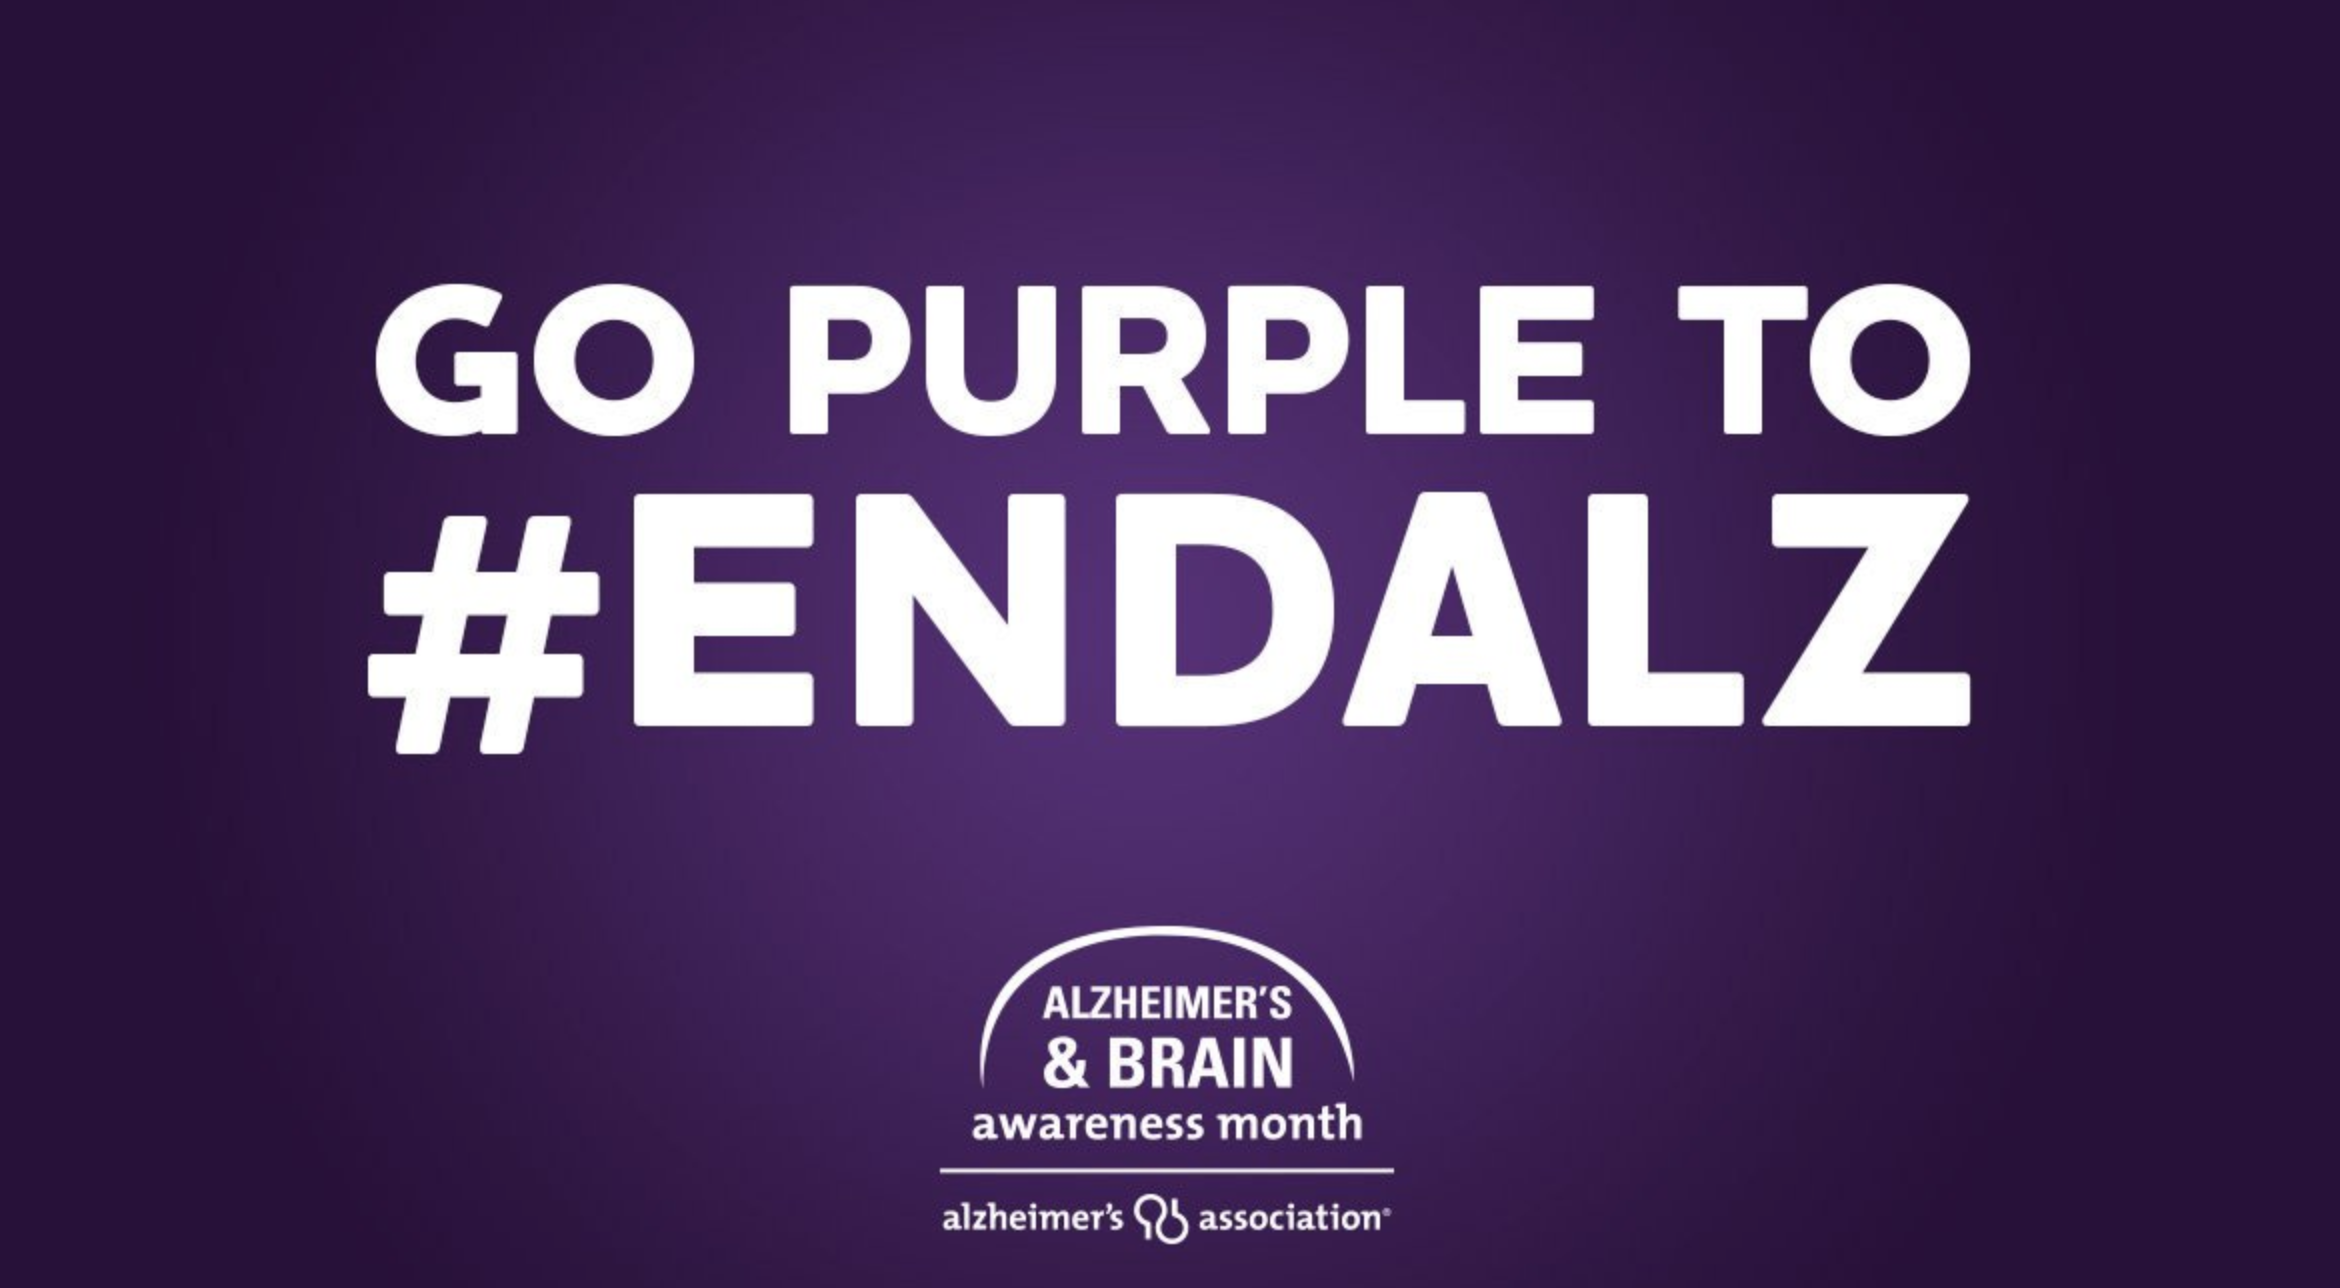 June is National Alzheimer's and Brain Awareness Month